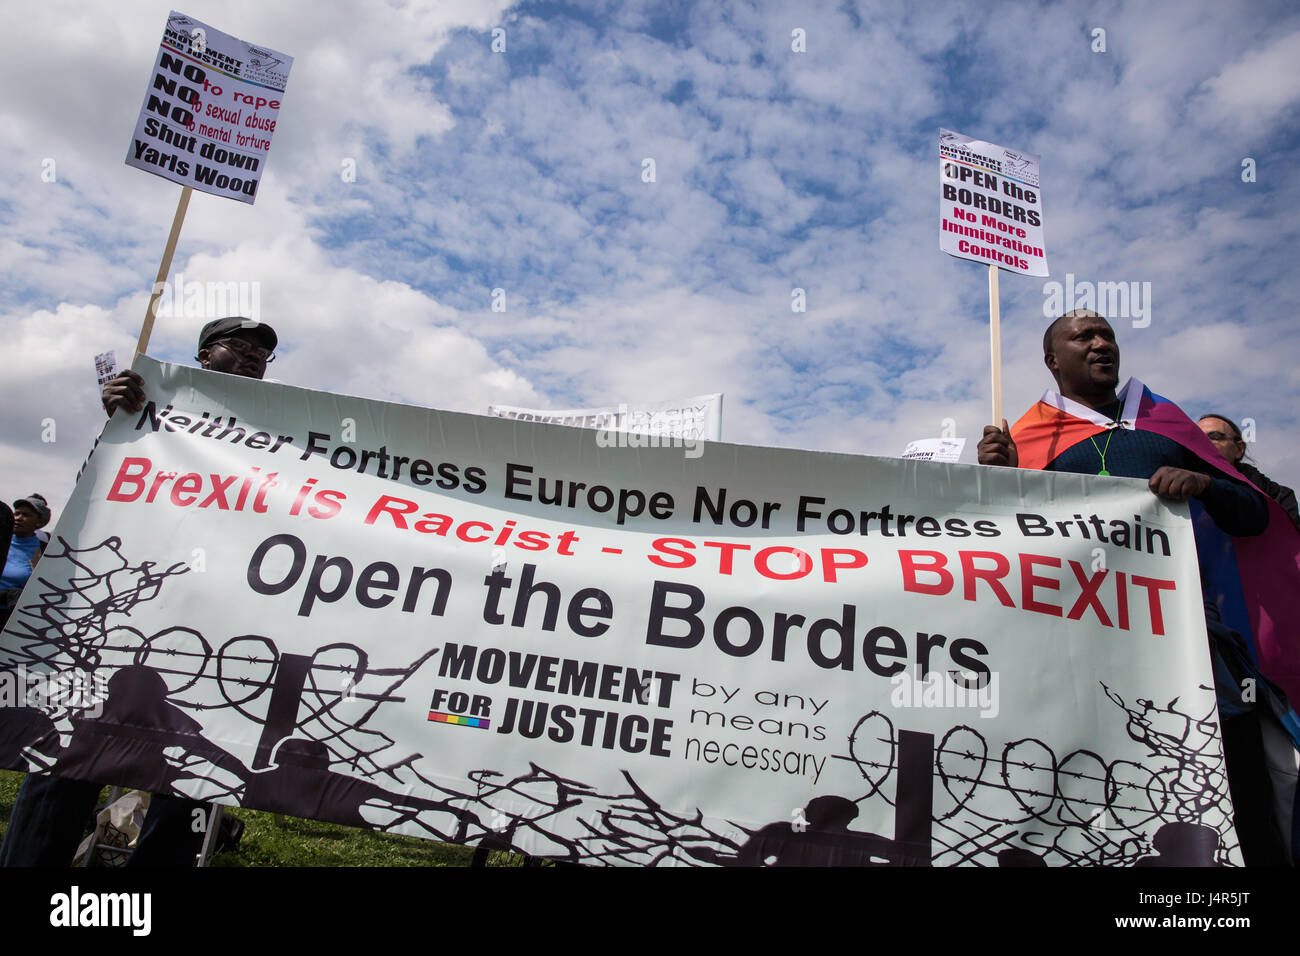 Milton Ernest, UK. 13th May, 2017. Activists from Movement For Justice By Any Means Necessary address a large protest - Stock Image